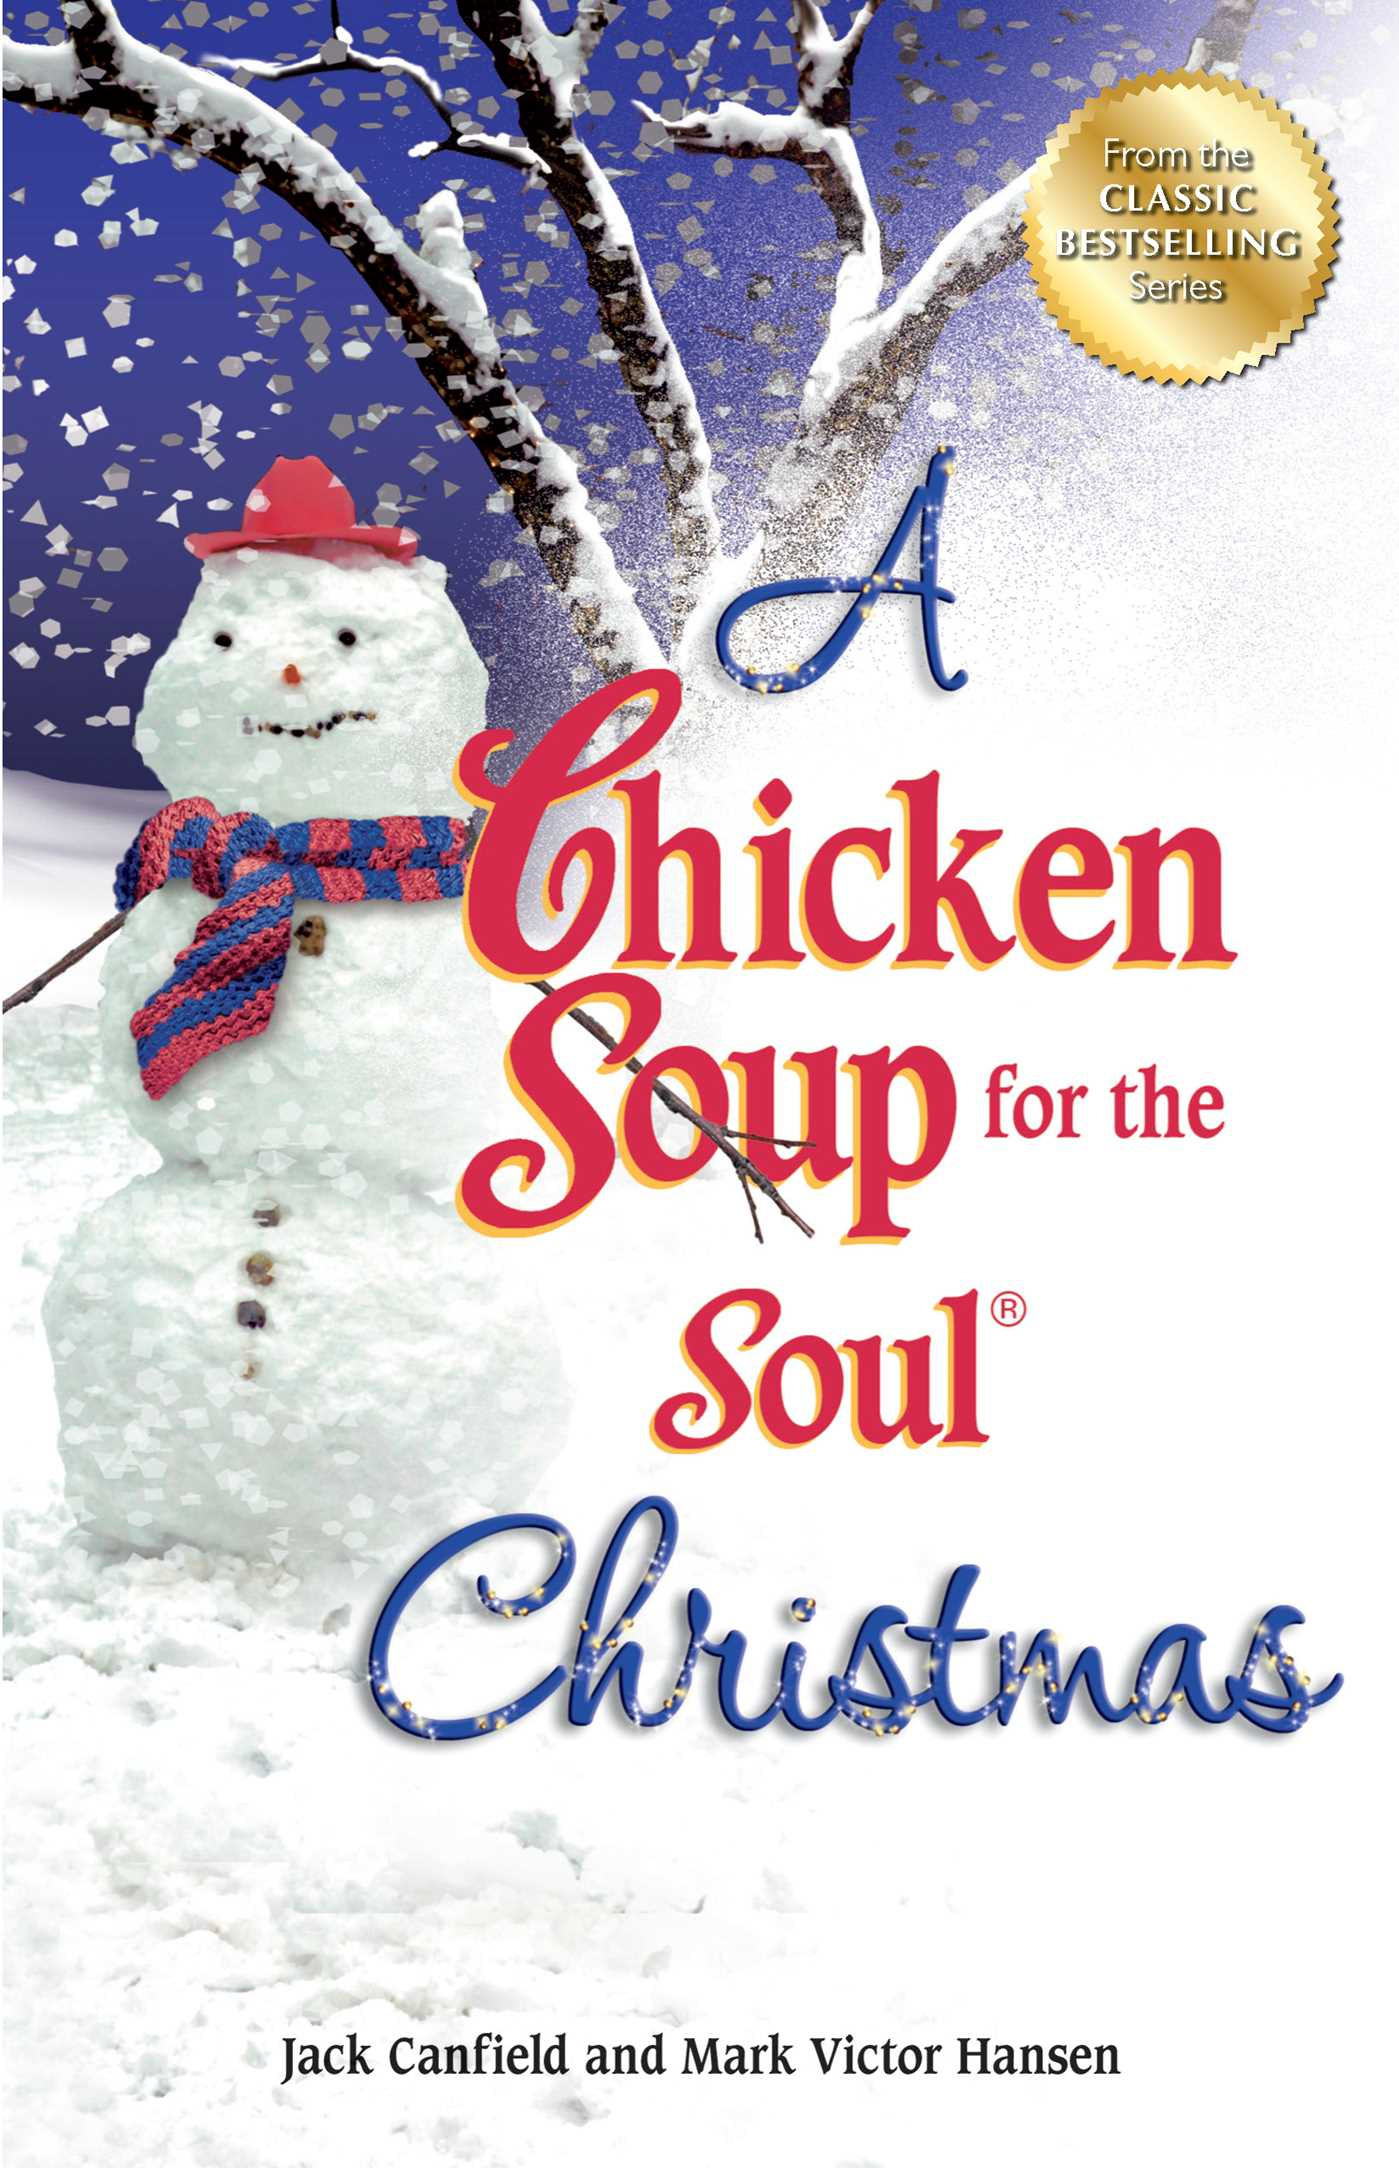 Chicken-soup-for-the-soul-christmas-9781623610708_hr